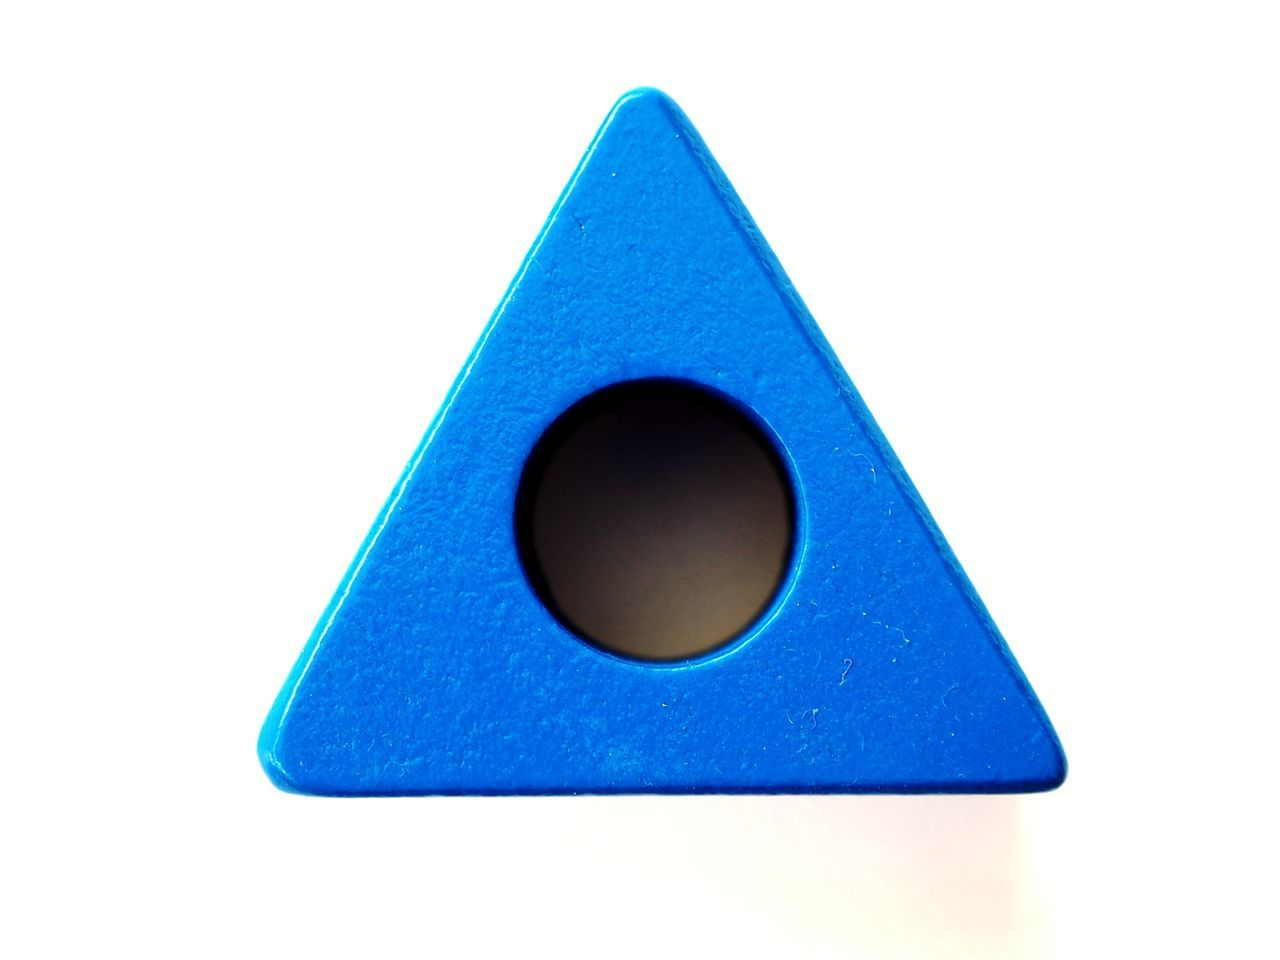 White Background Circles And Holes Black Hole Colored Wood Multi Colored Neon Life EyeEmNewHere Geometry Pattern Geometric Abstraction Abstract Geometry Geometric Shape Minimalist Photography  Minimalism Abstract Photography Wooden Shapes Close-up Triangle Triangle With A Hole In The Middle Blue Blue Triangle White And Blue Geometric Background